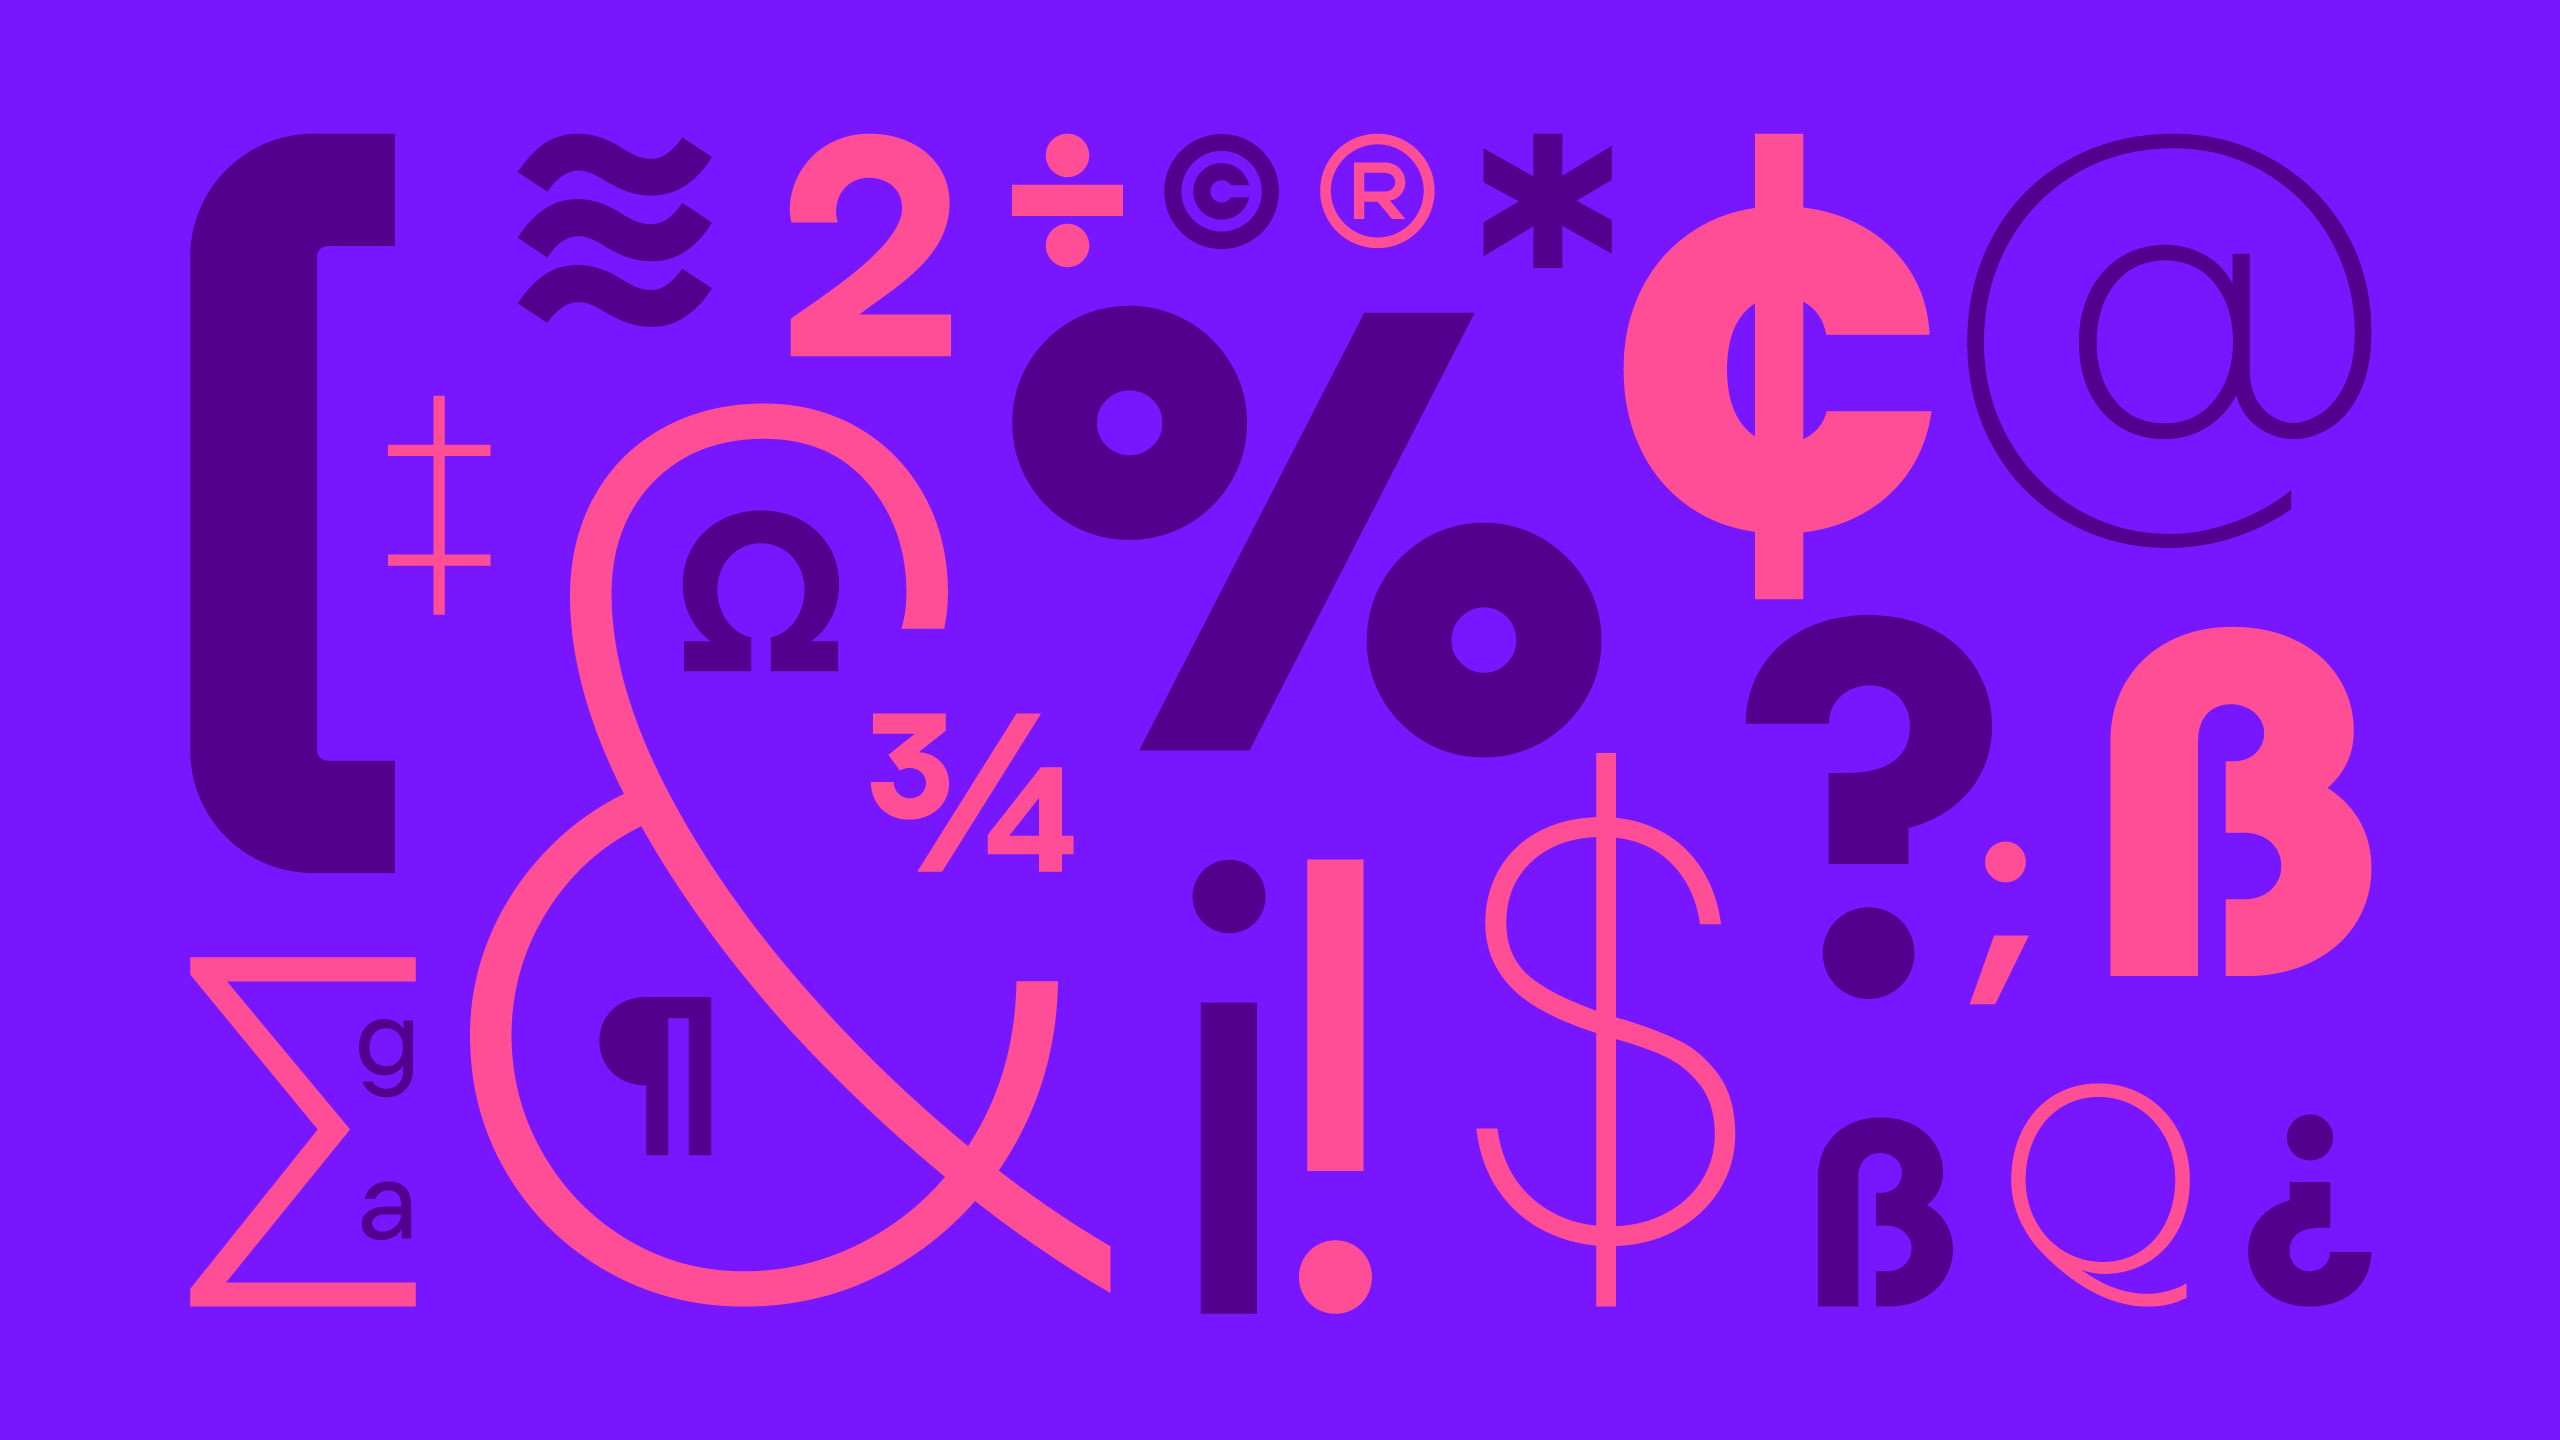 Letterforms from custom font